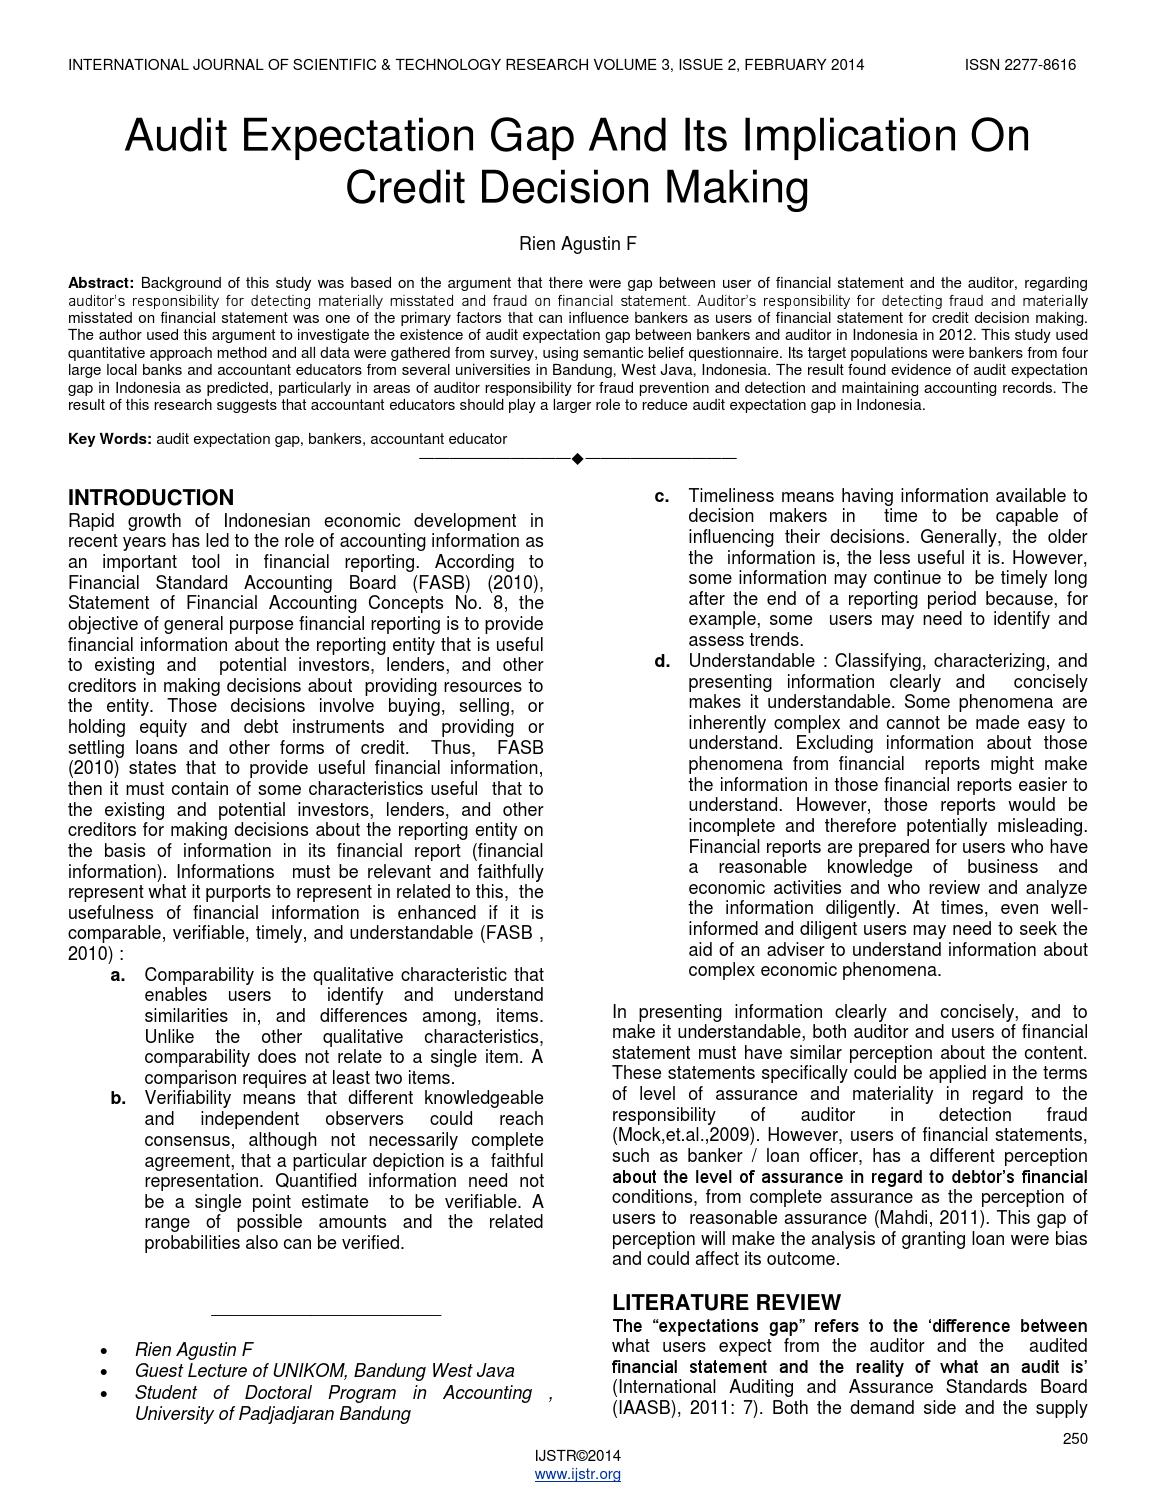 financial implication of decision The impact of finances on how businesses make decisions fills books and is an area of study for business schools a cursory review shows a few primary types of decisions that hinge on a company's financial health.